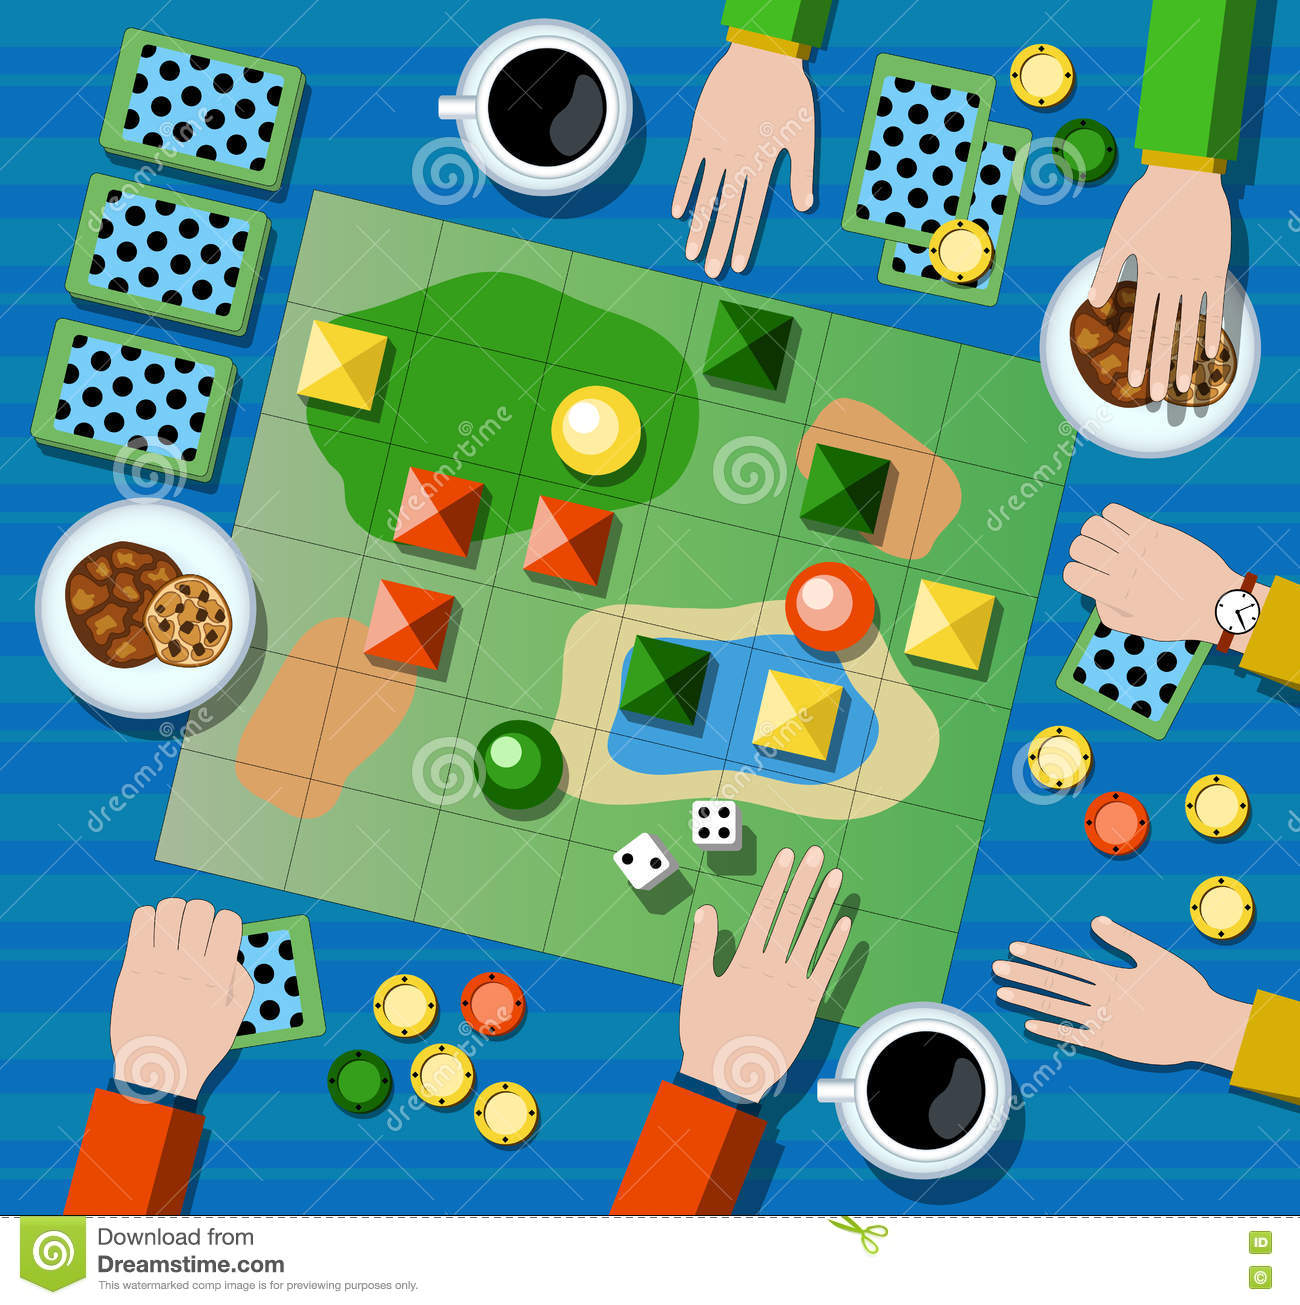 Table game flat illustration. Family board game with player`s hands.